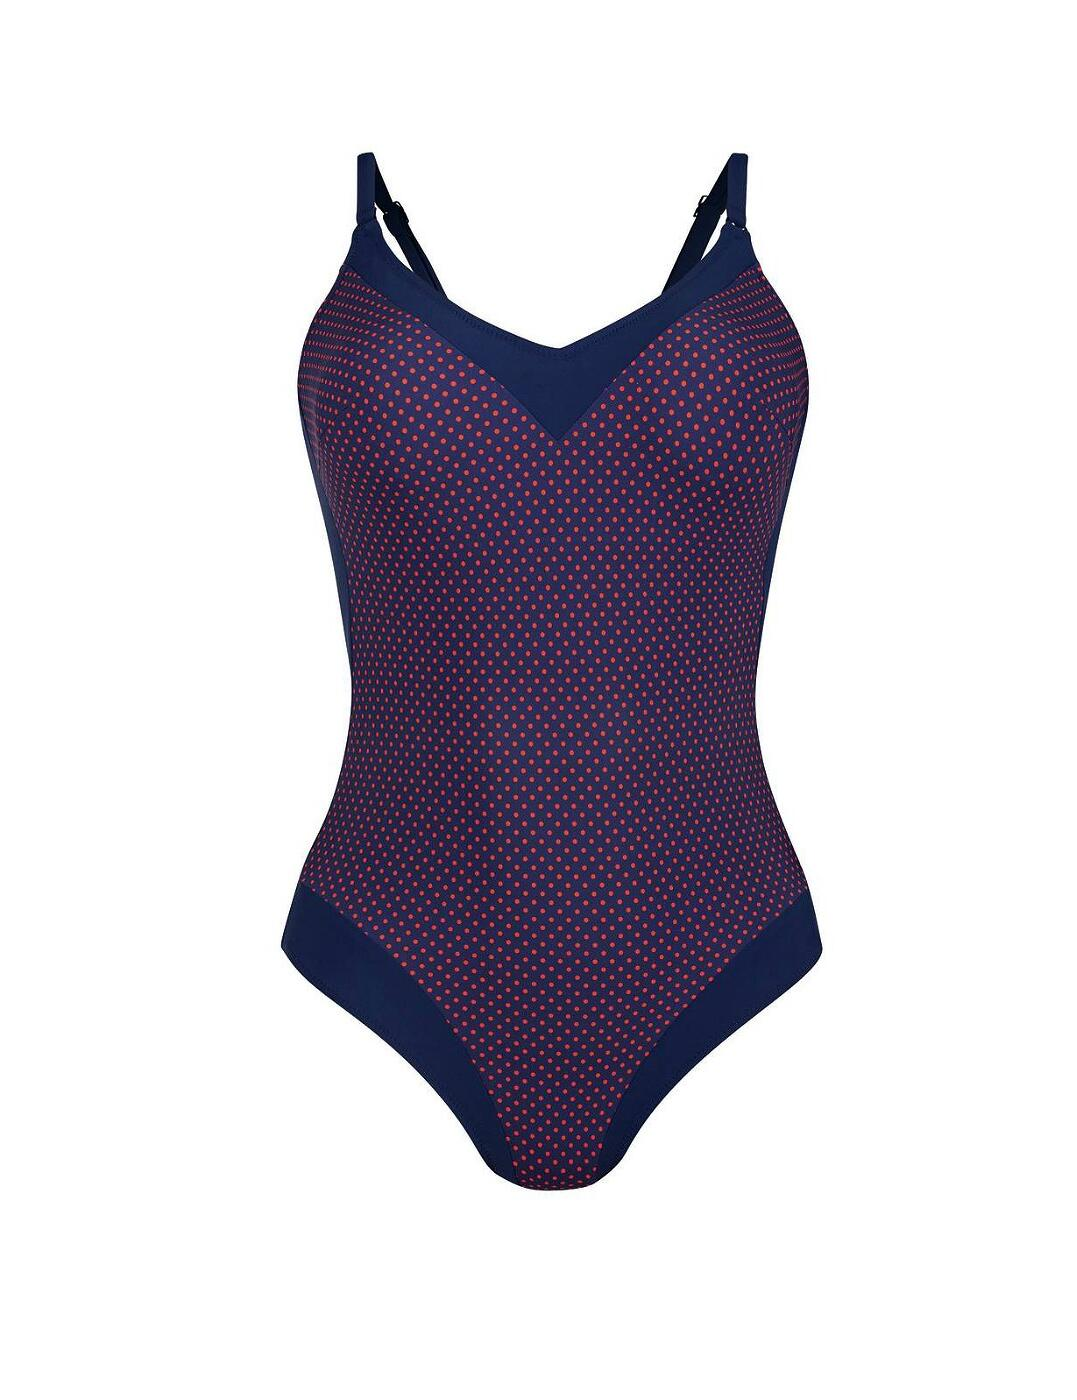 7739 Rosa Faia By Anita Mabela Swimsuit - 7739 Midnight Blue